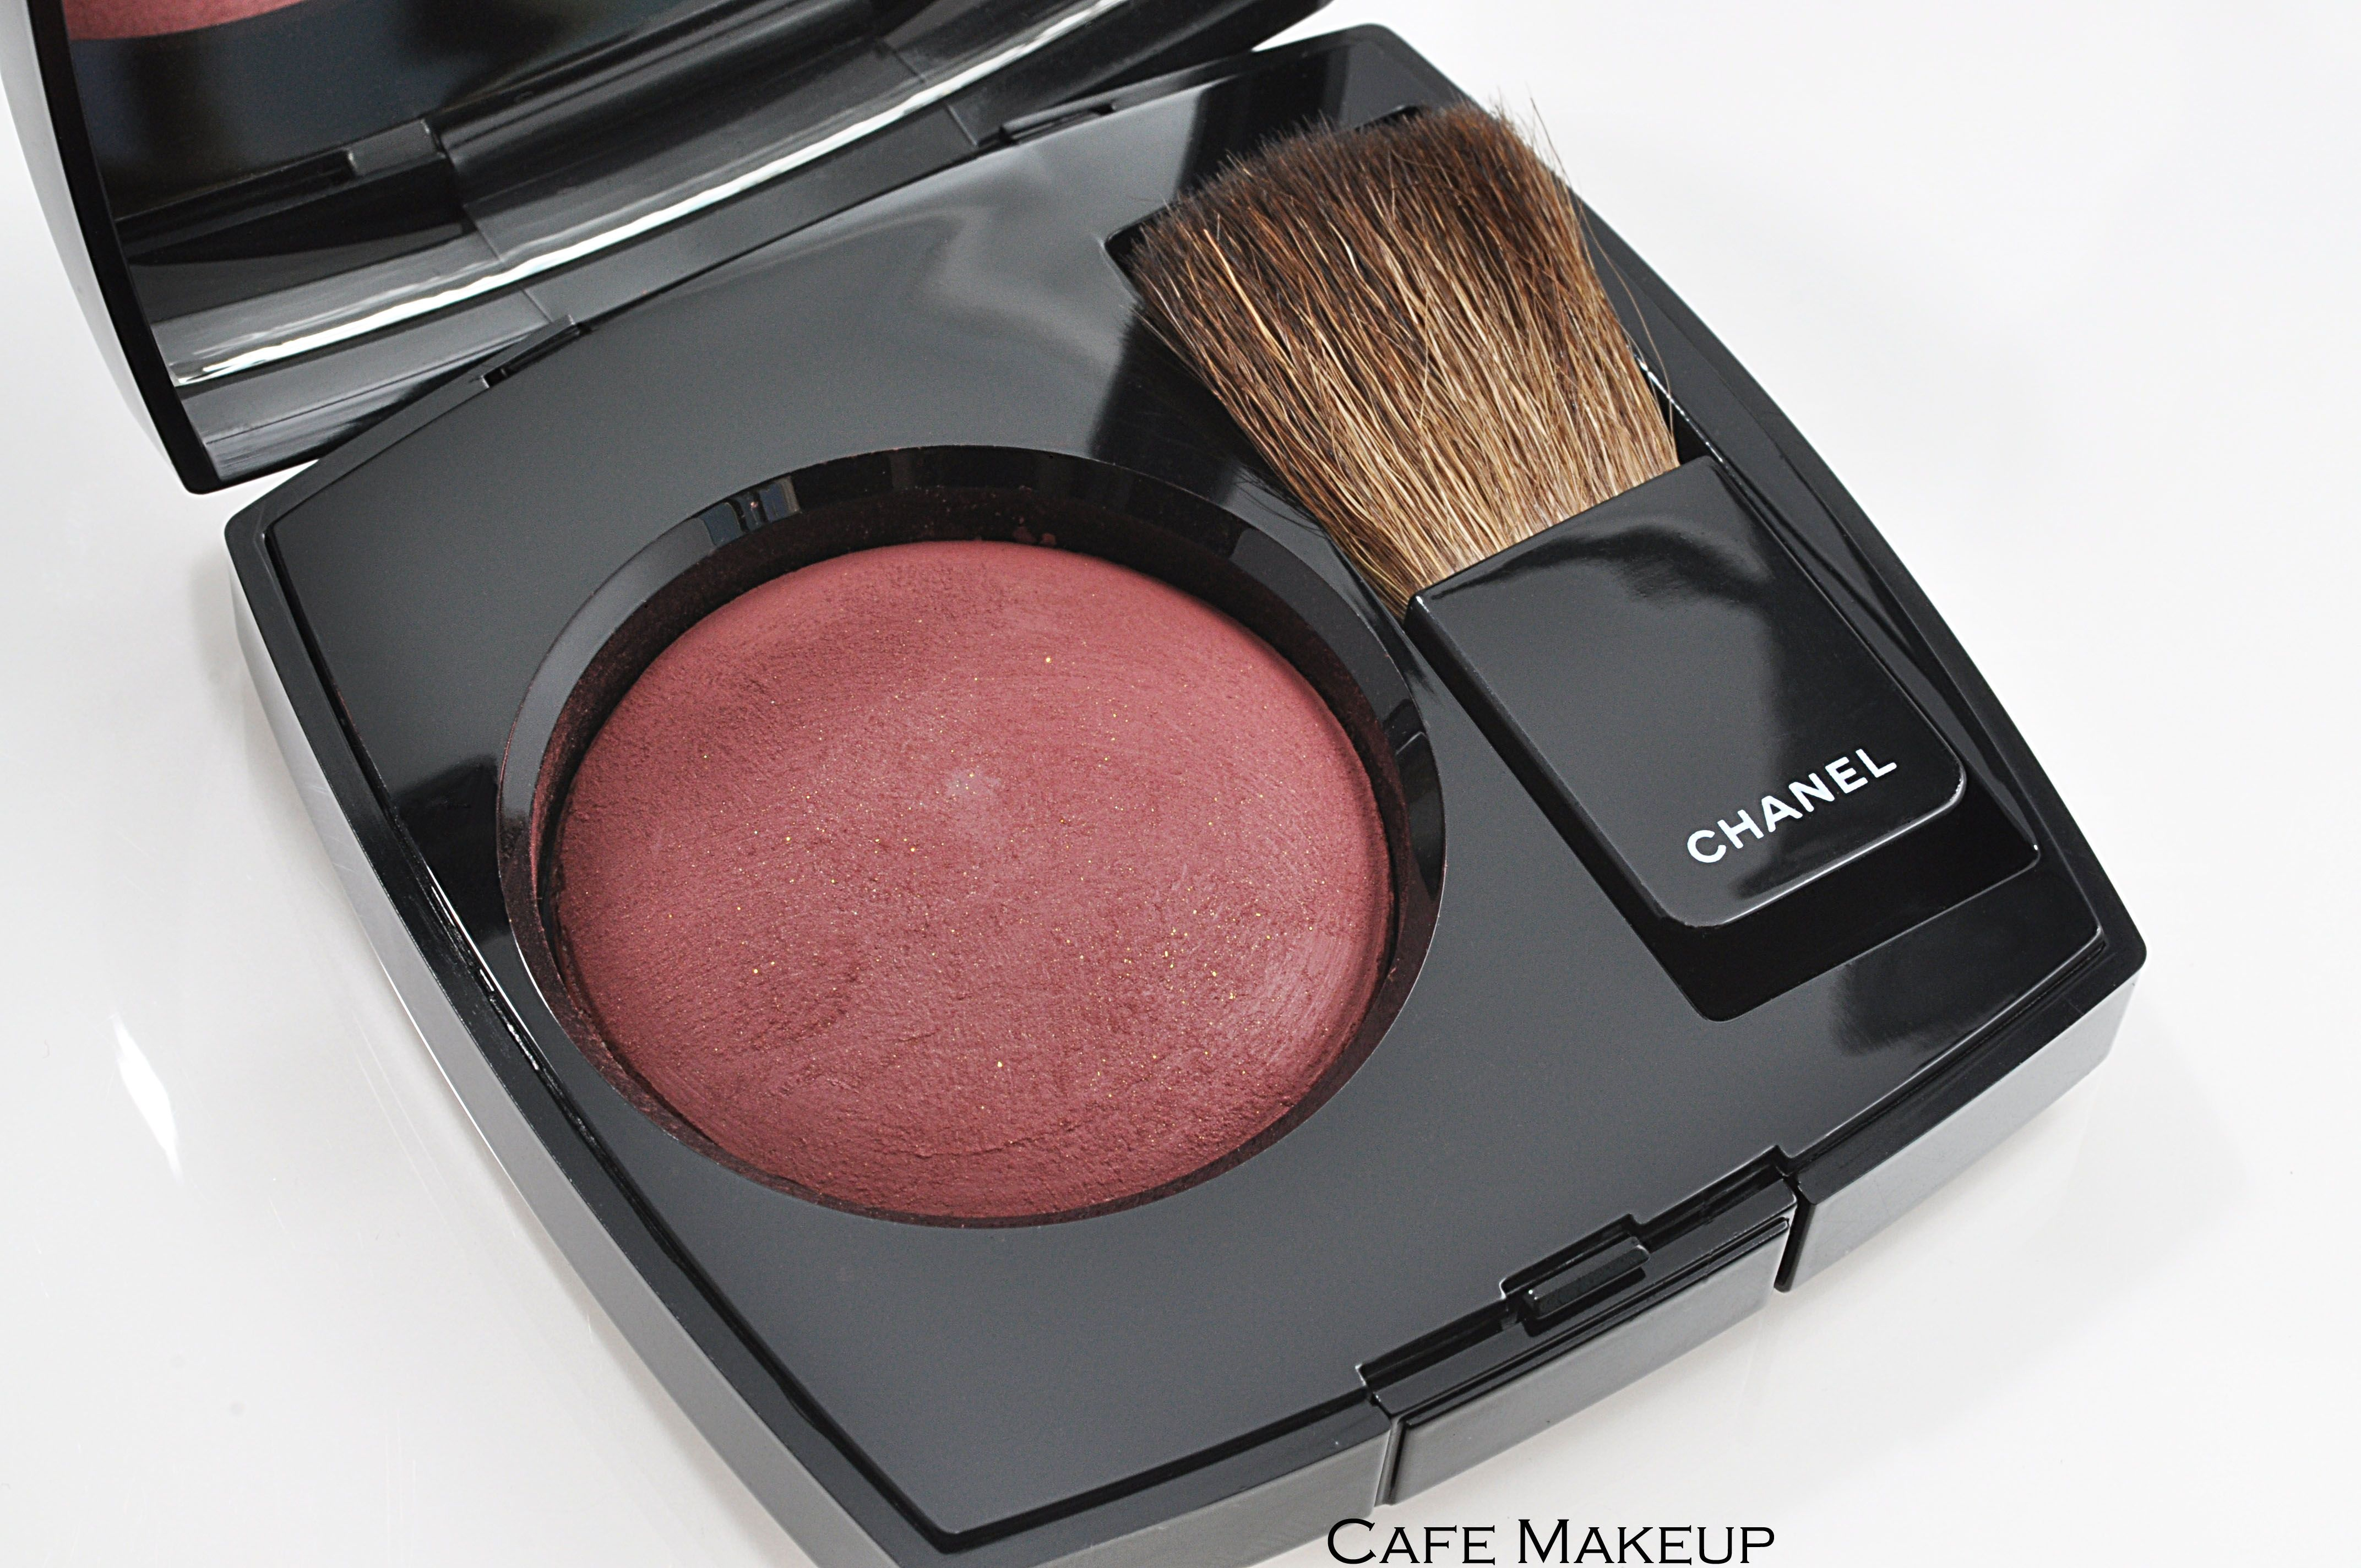 Chanel Joues Contraste In 63 Plum Attraction Fall 2010 Les Contrastes De Chanel Collection 42 My Makeup Collection Chanel Beauty Must Haves